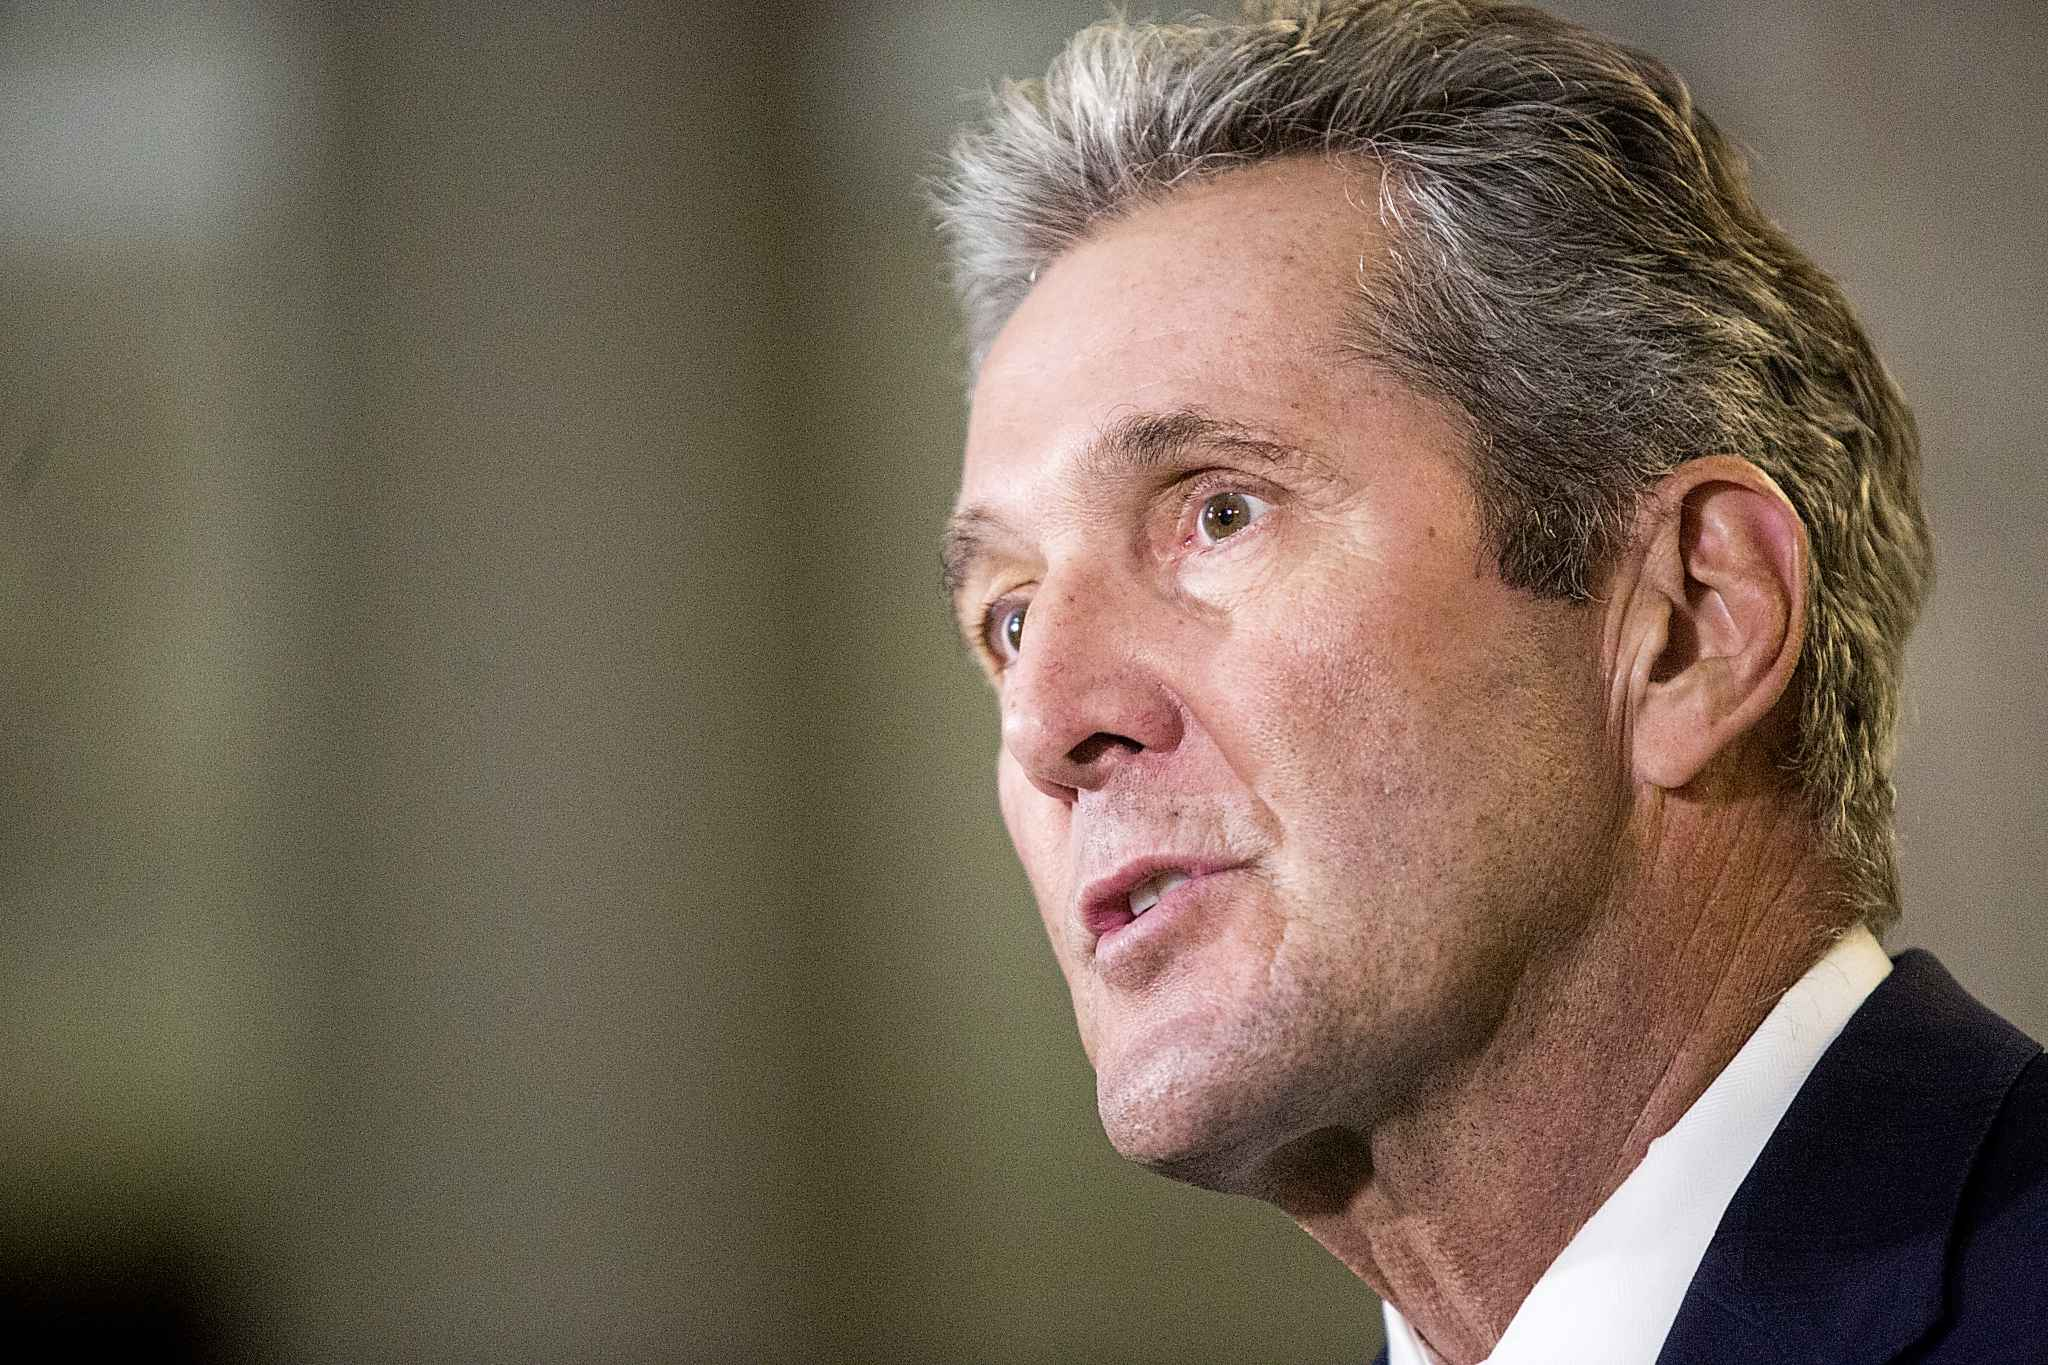 Manitoba Premier Brian Pallister's Tory government accounced it will underspend its health budget by nearly a quarter of a billion dollars this year.